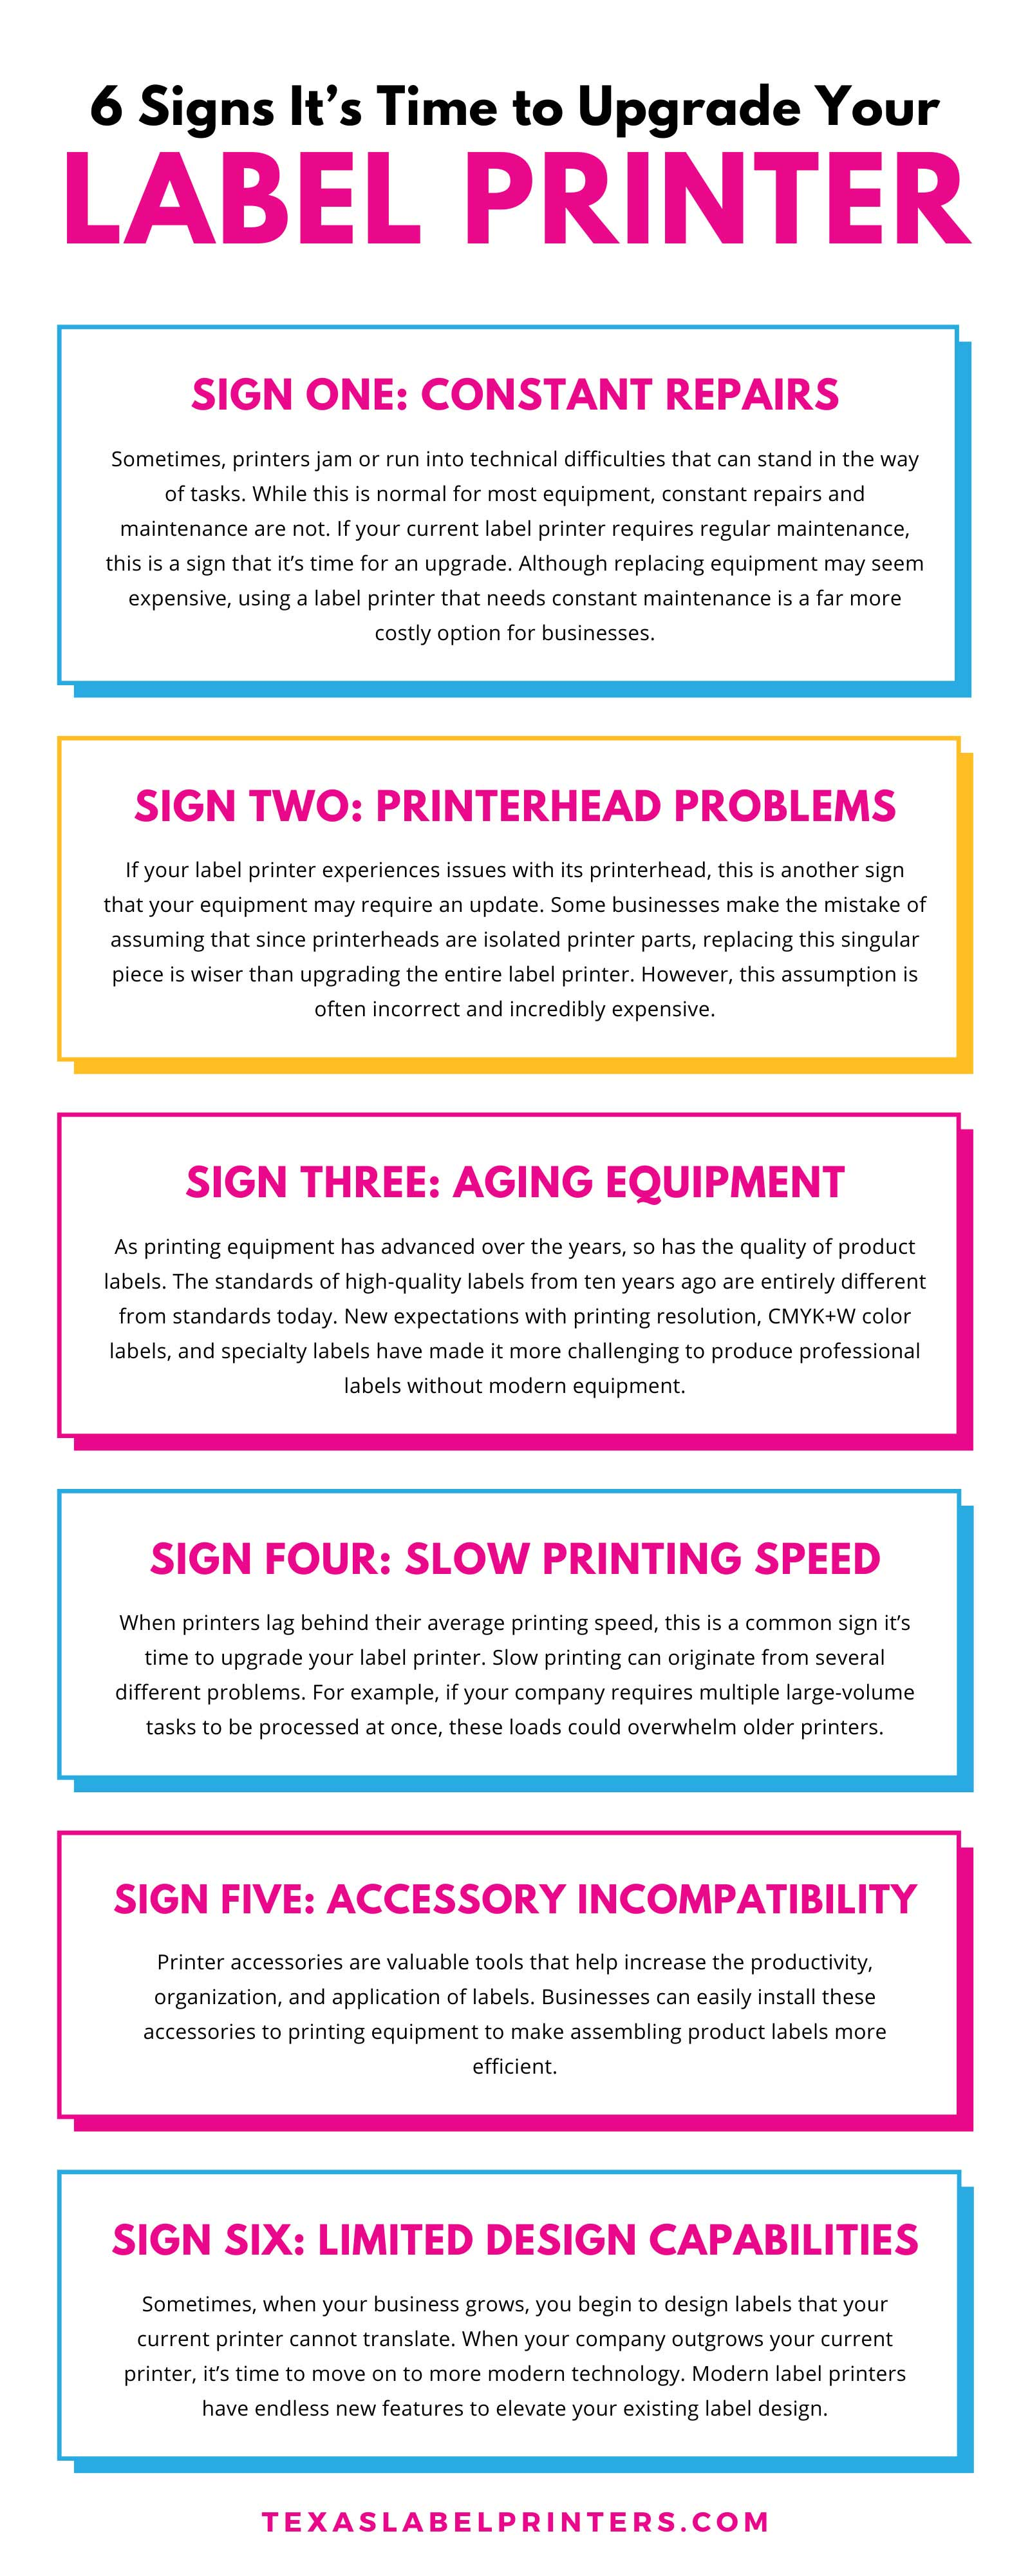 6 Signs It's Time to Upgrade Your Label Printer Infographic